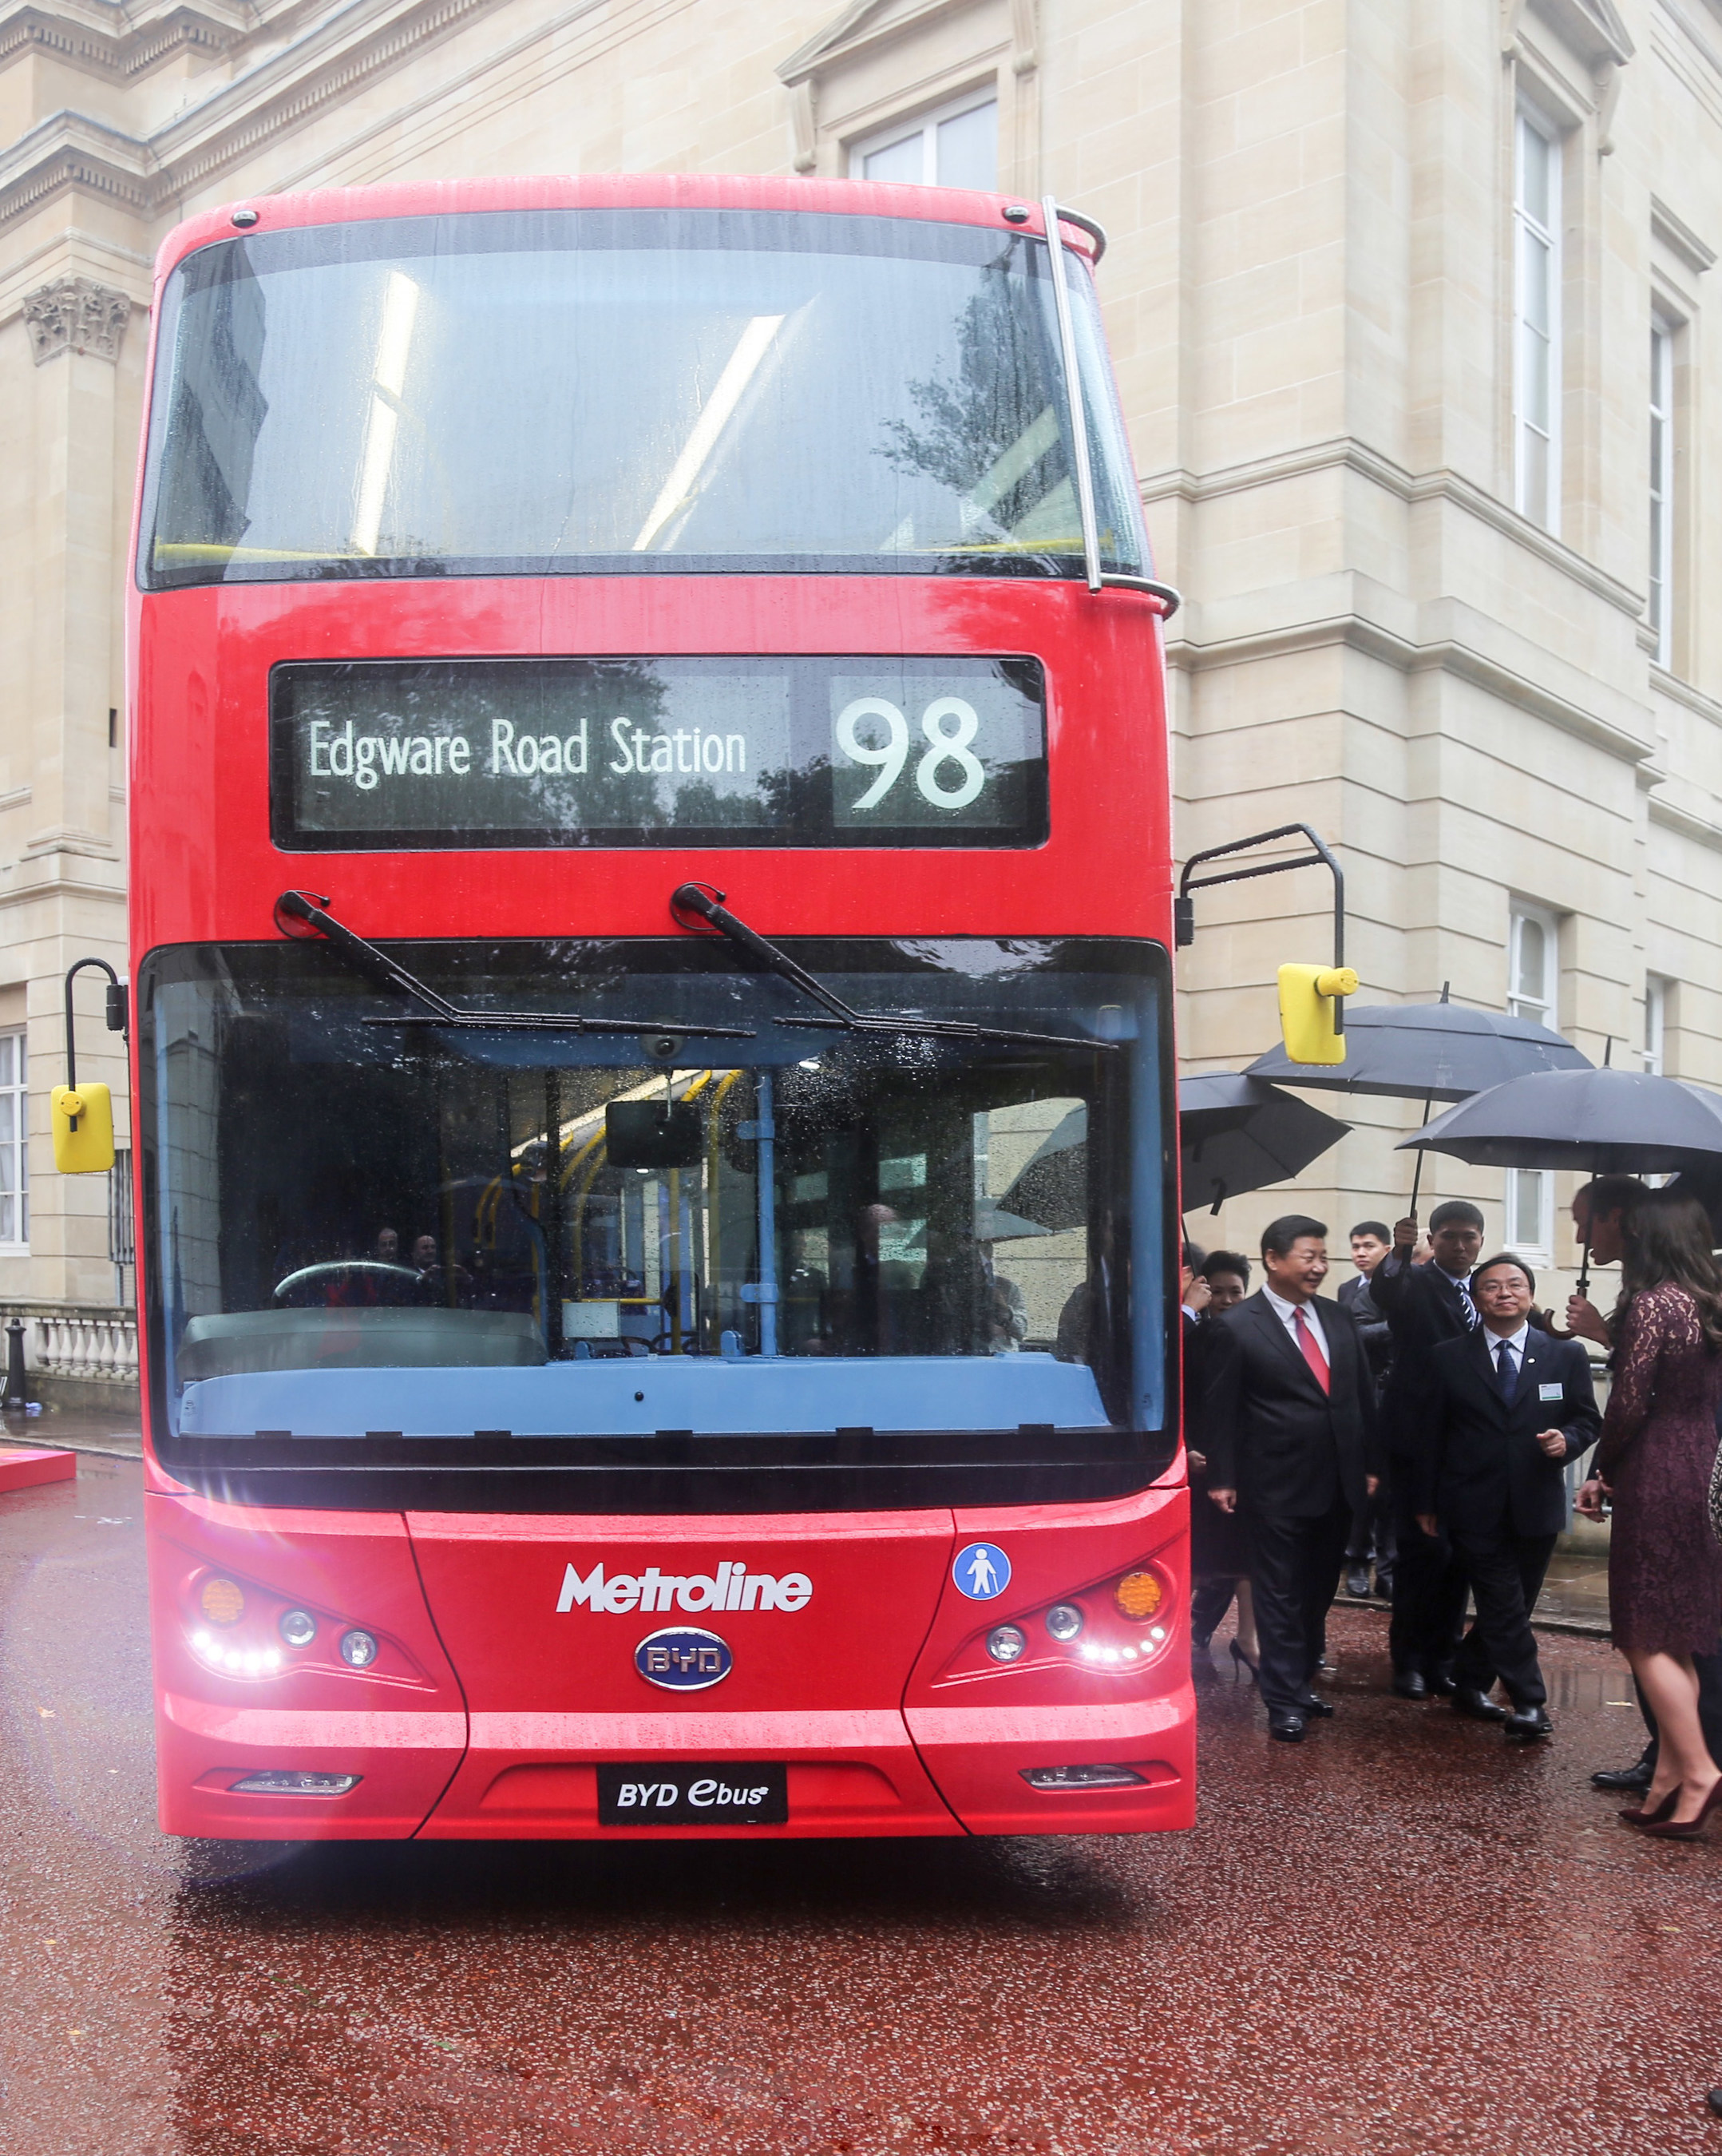 The World's first Electric Double-Decker Bus